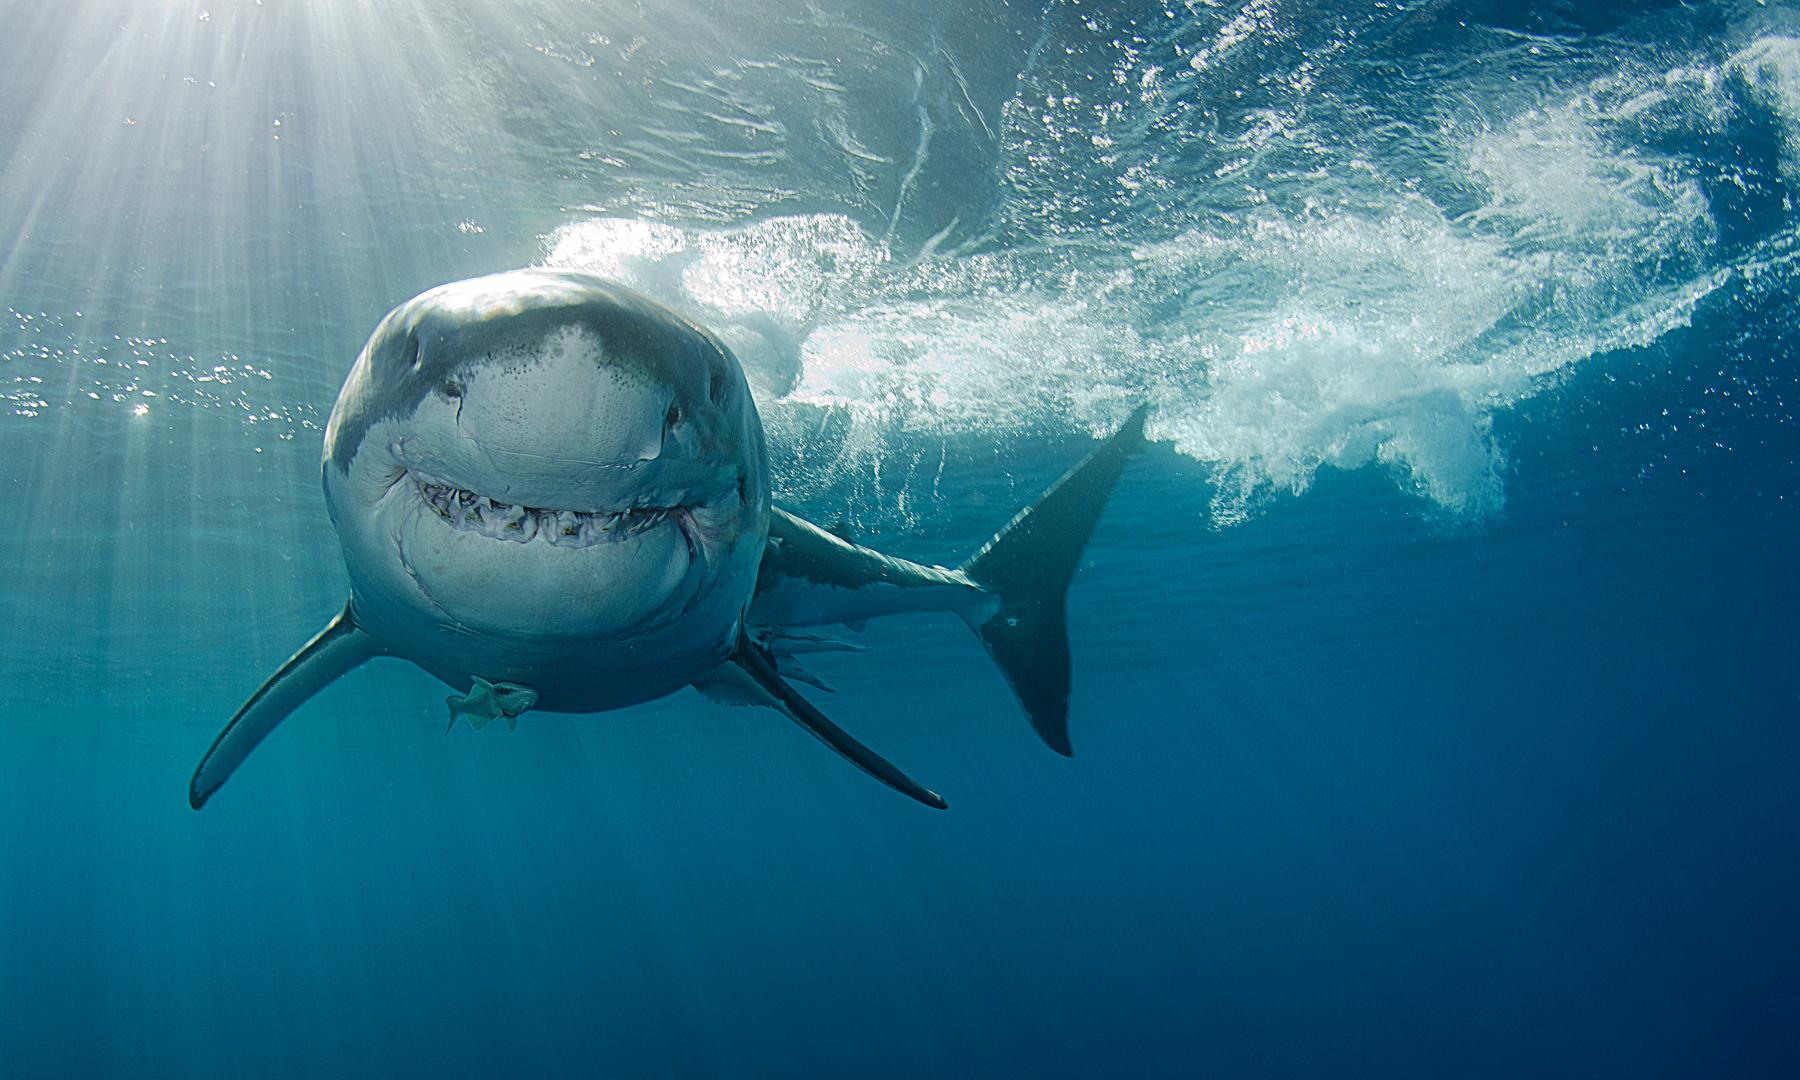 What animals are known to hunt and kill great white sharks? The Weekend quiz